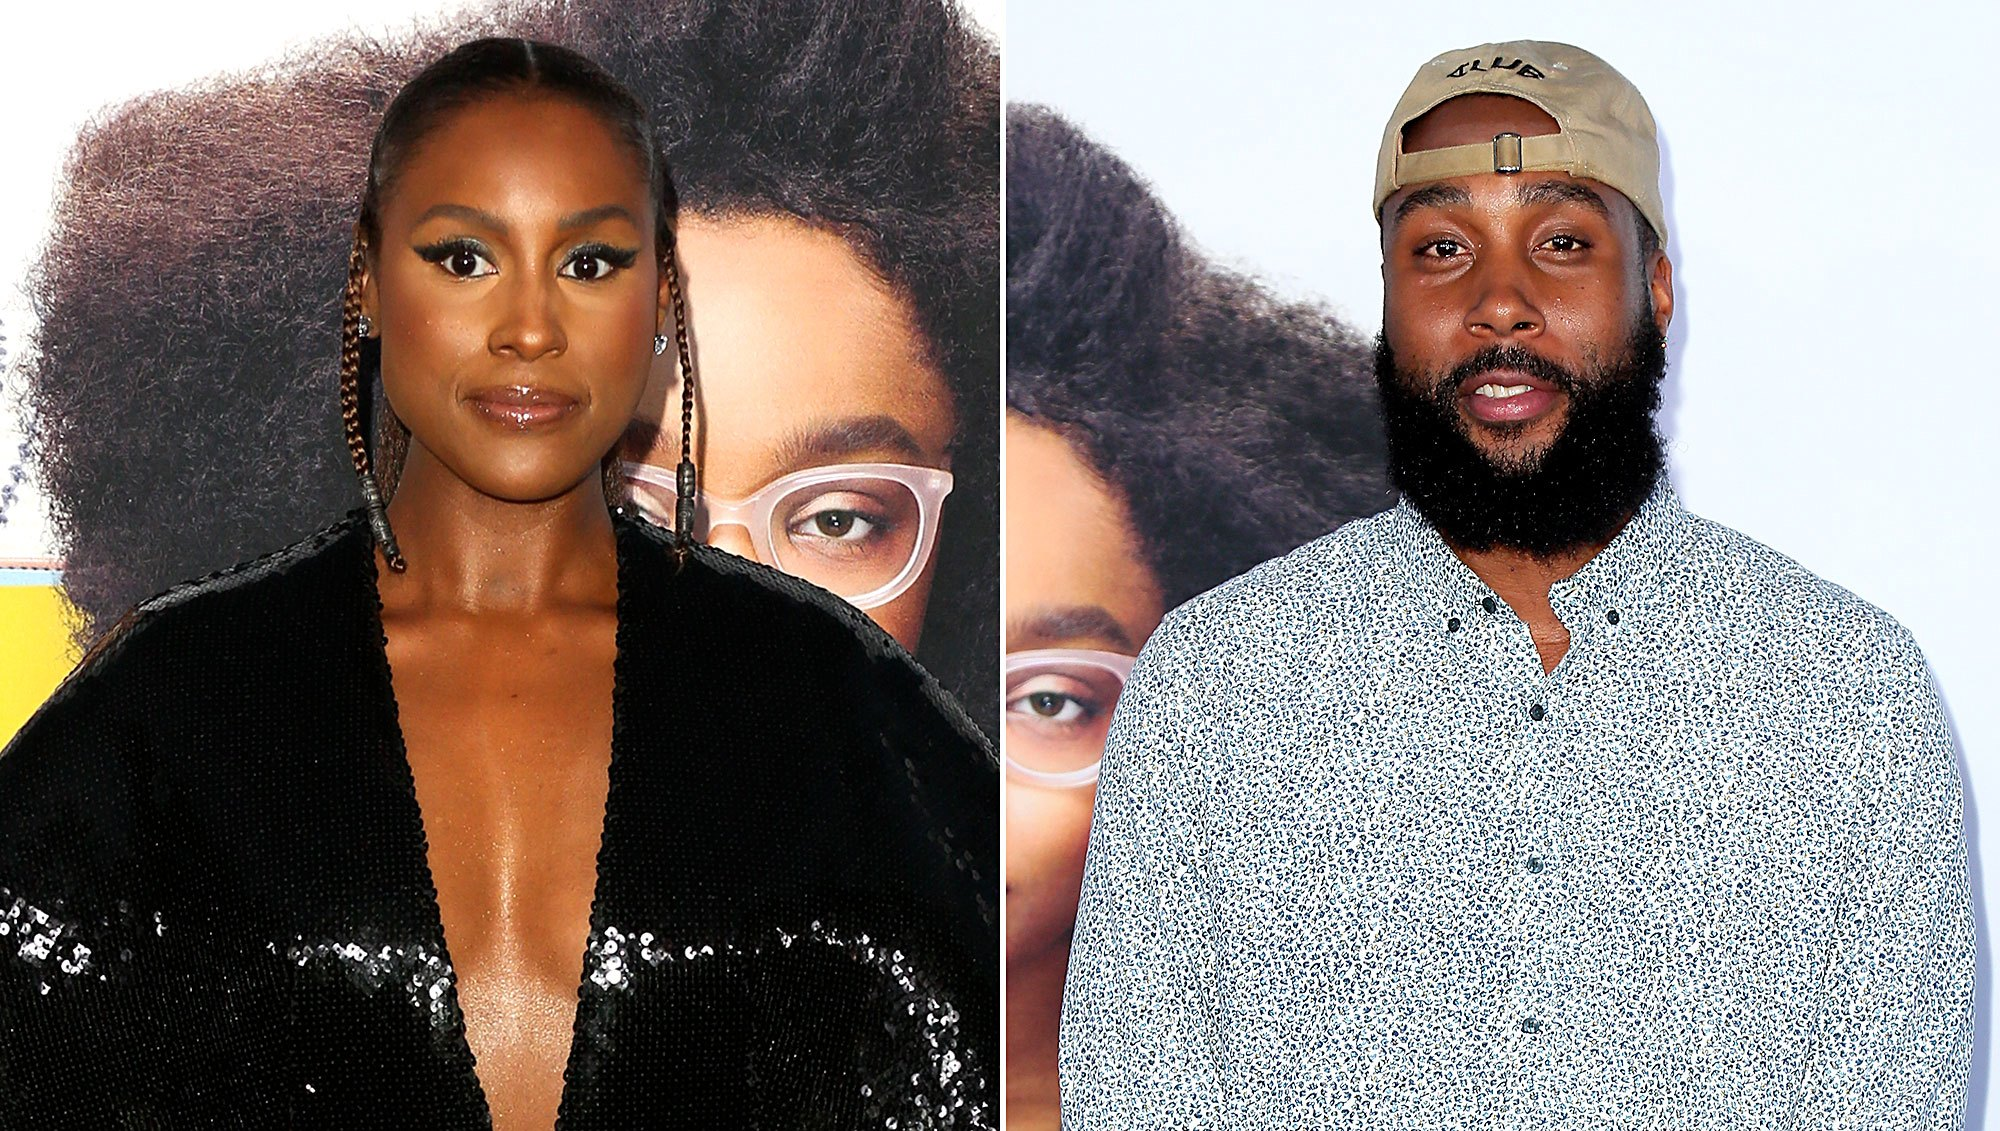 Issa Rae's Brother Lamine Diop Dishes on Her 'Low-Key' Engagement